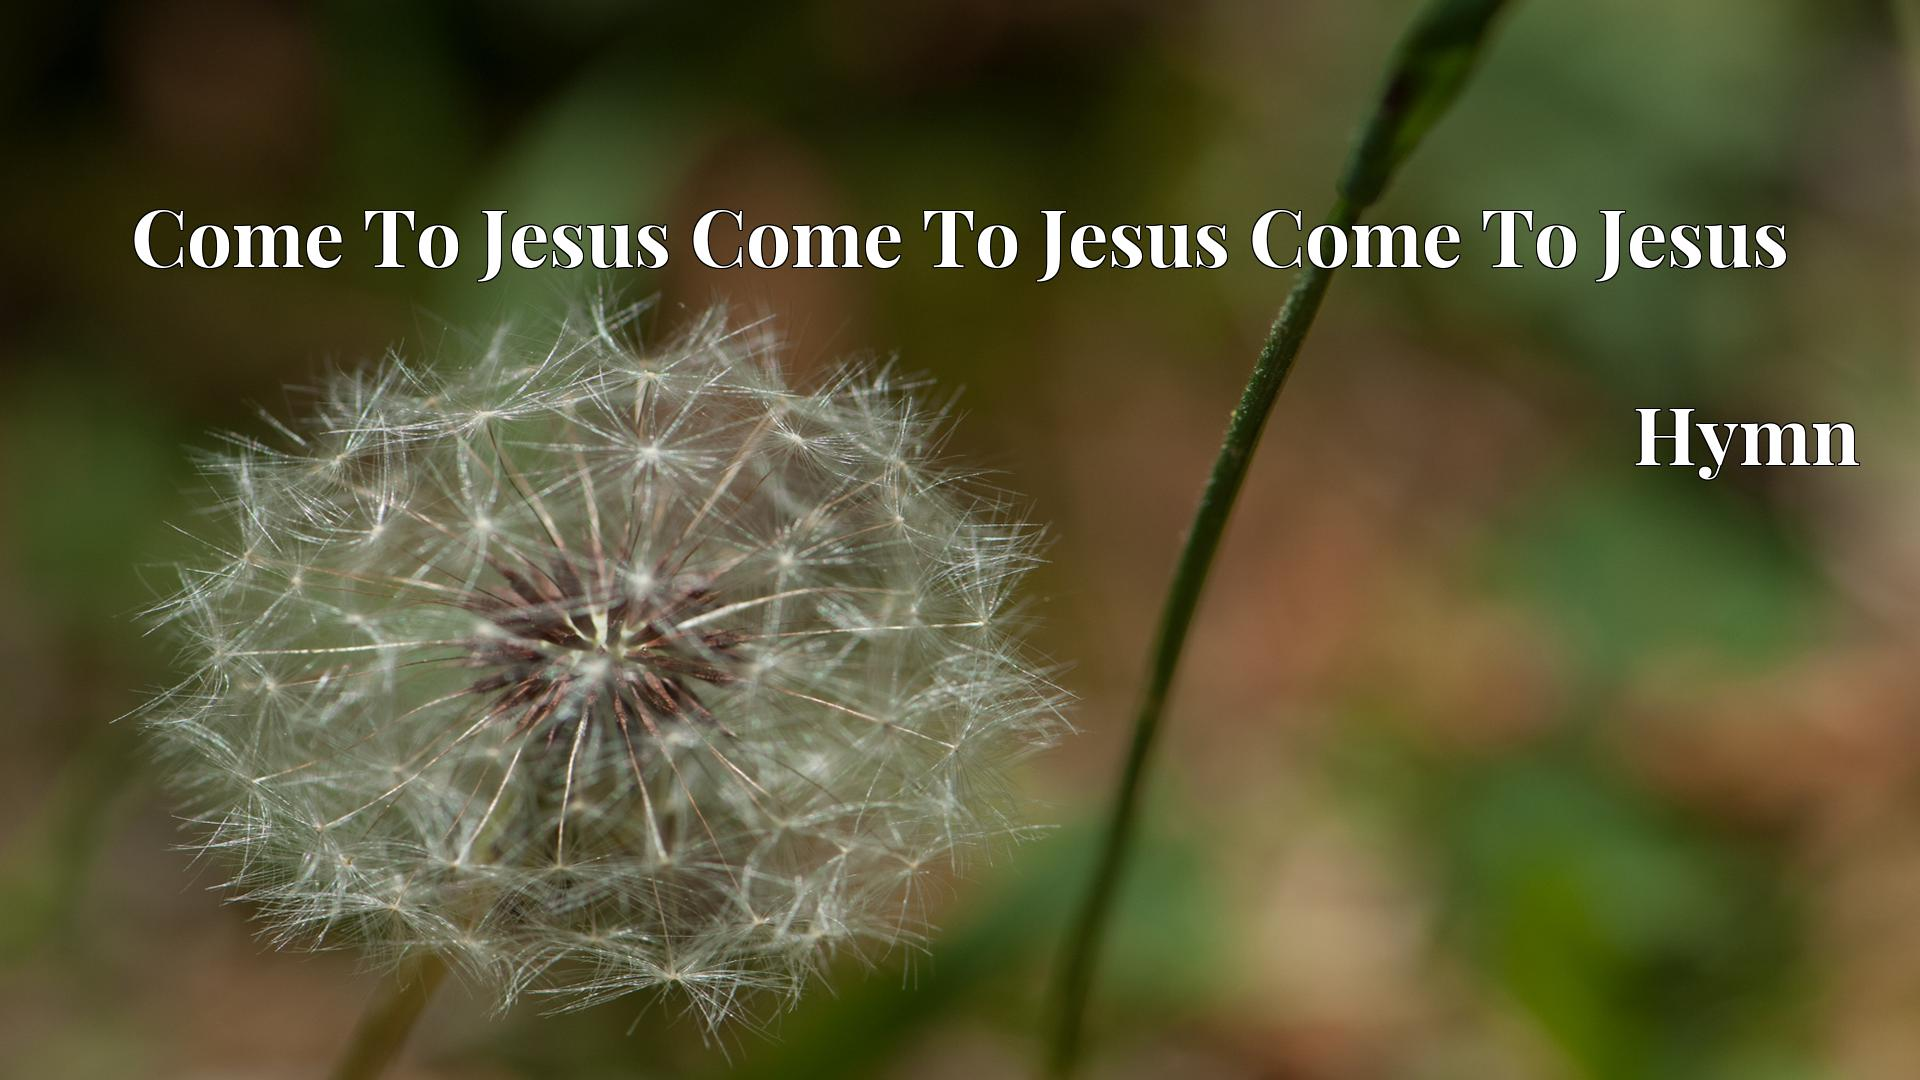 Come To Jesus Come To Jesus Come To Jesus - Hymn